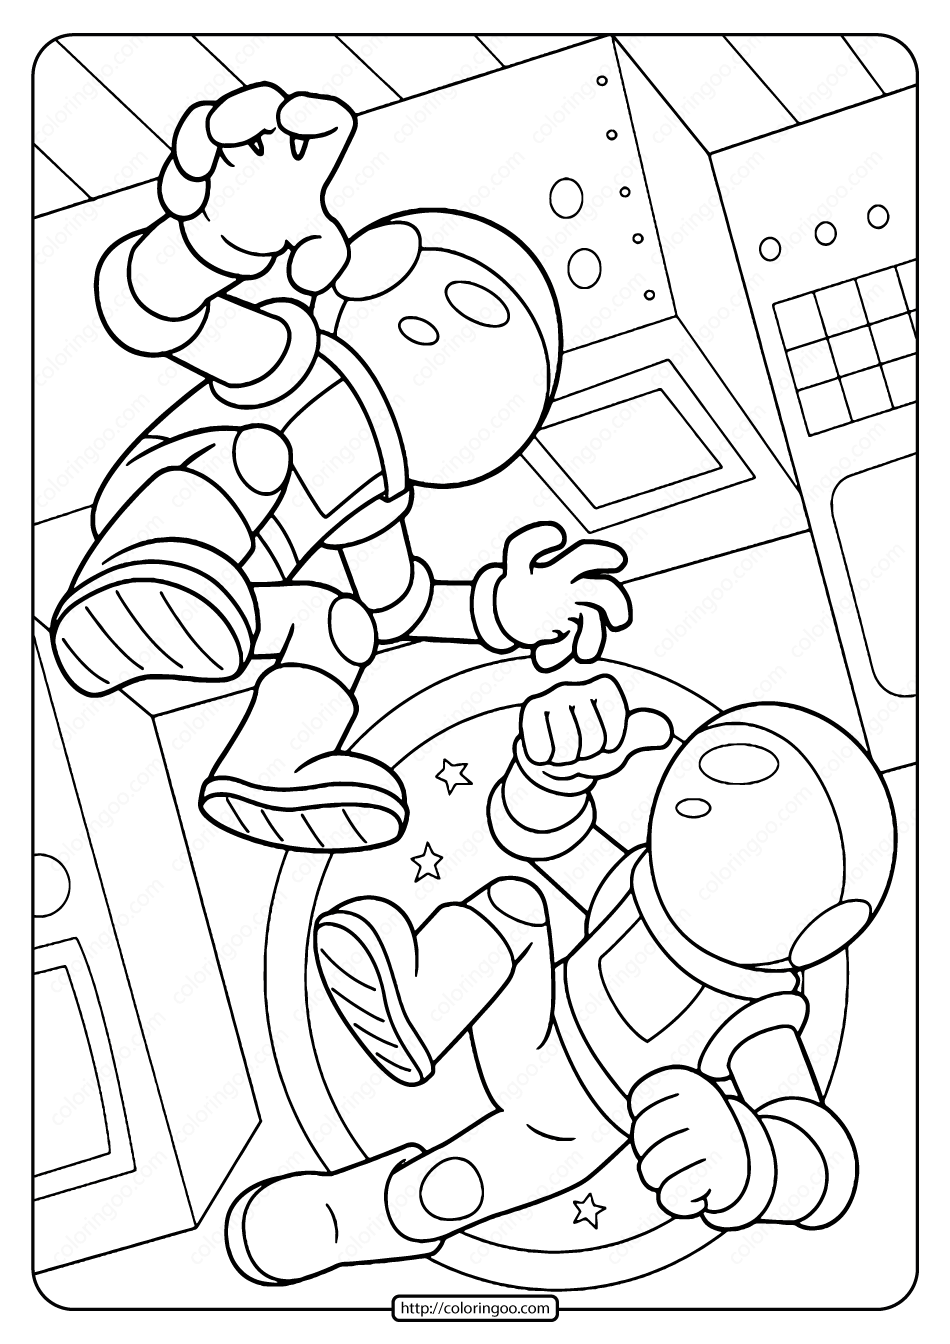 coloring pages to print for free finding nemo coloring pages for kids free printable coloring pages print for free to